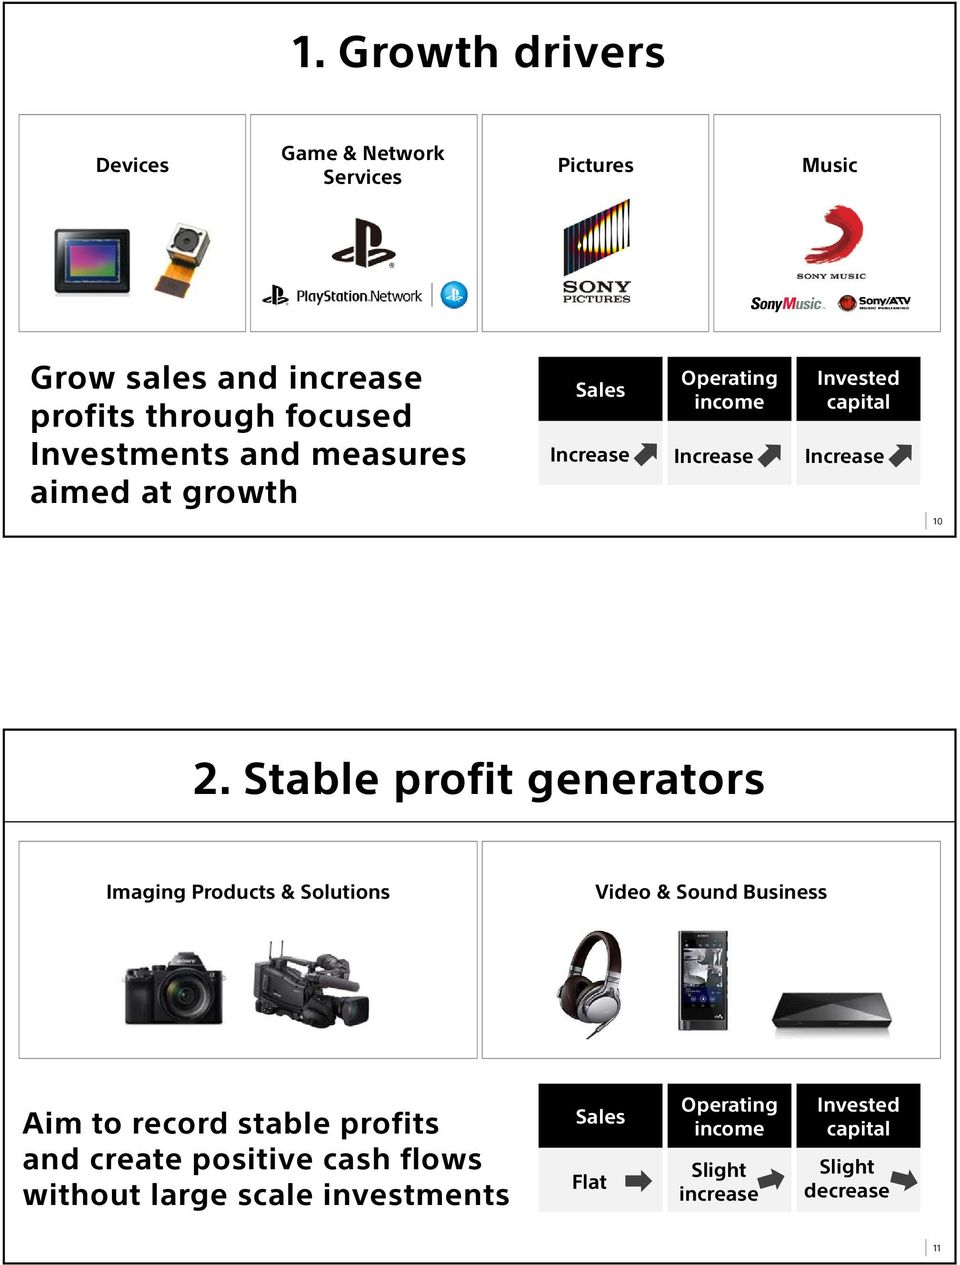 Stable profit generators Imaging Products & Solutions Video & Sound Business Aim to record stable profits and